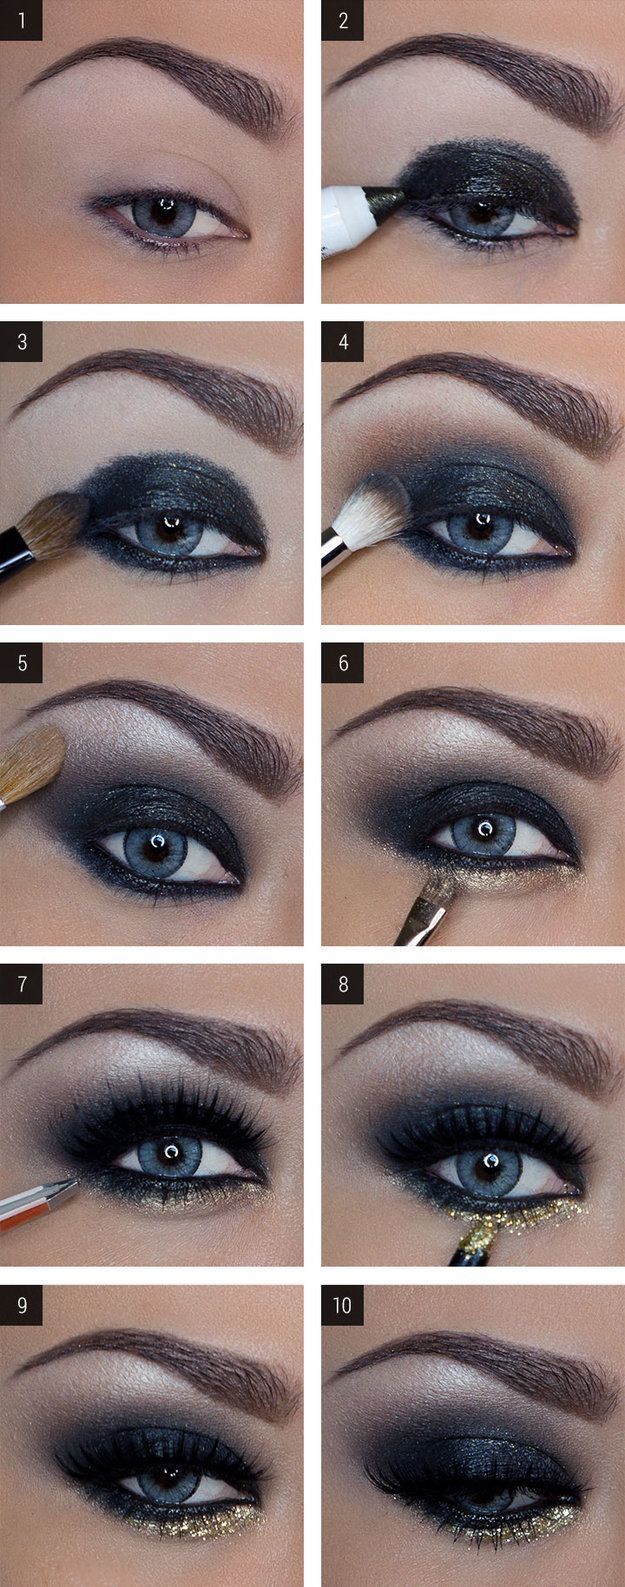 How to Do Dramatic Smokey Eyes | Makeup for Blue Eye by Makeup Tutorials at http://www.makeuptutorials.com/makeup-tutorial-12-makeup-for-blue-eyes